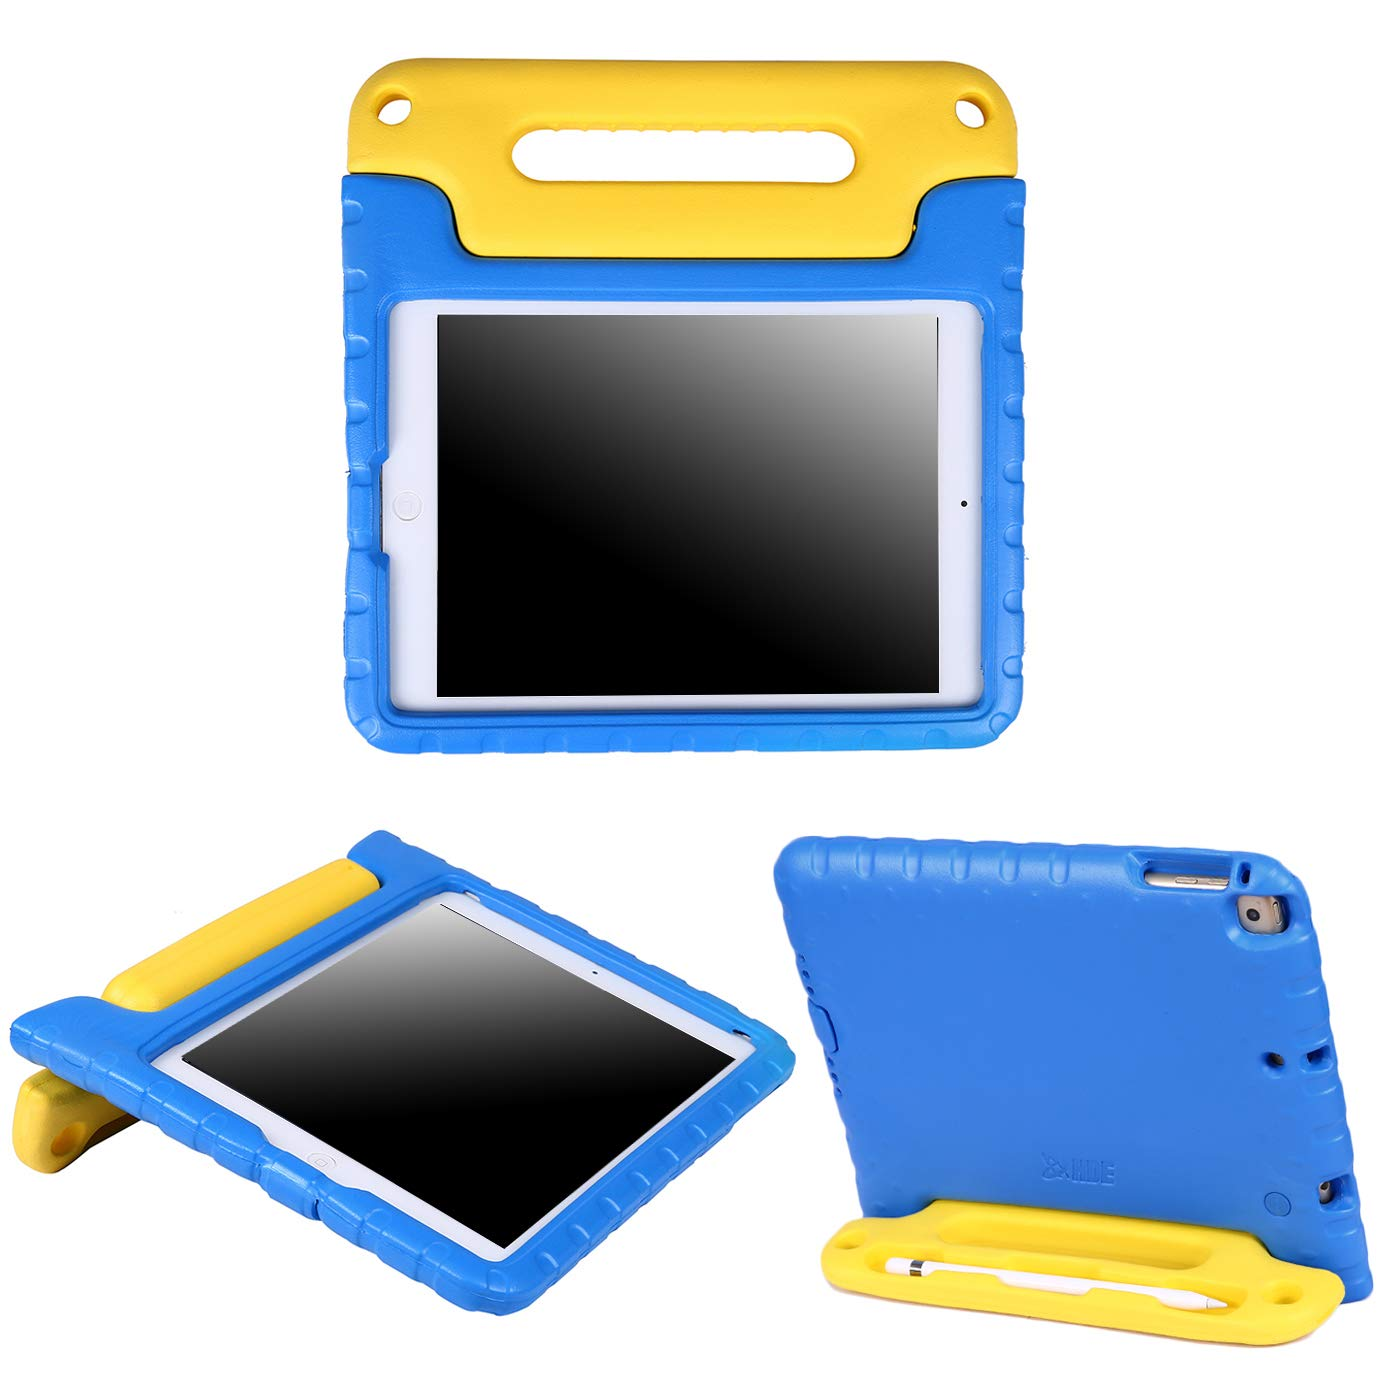 HDE iPad 6th Generation Case for Kids – iPad 9.7 inch 5th and 6th Generation Cases for Kids Shock Proof Protective Light Weight Cover with Handle Stand for Apple iPad 9.7 with Pencil Holder